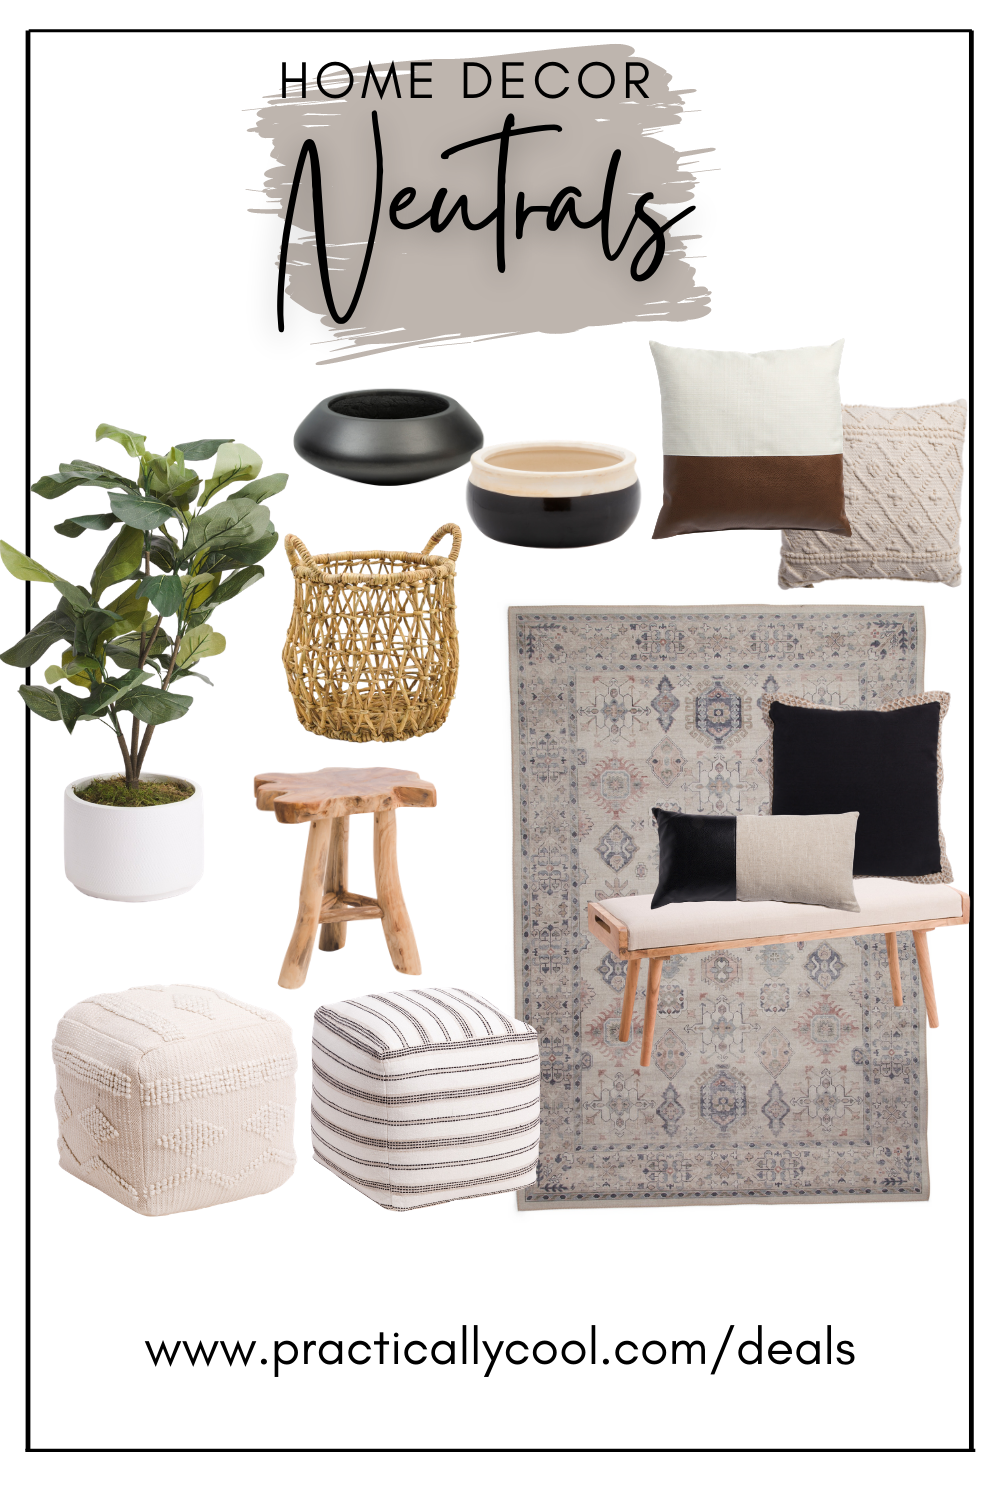 Great Deals On Home Decor from i.pinimg.com